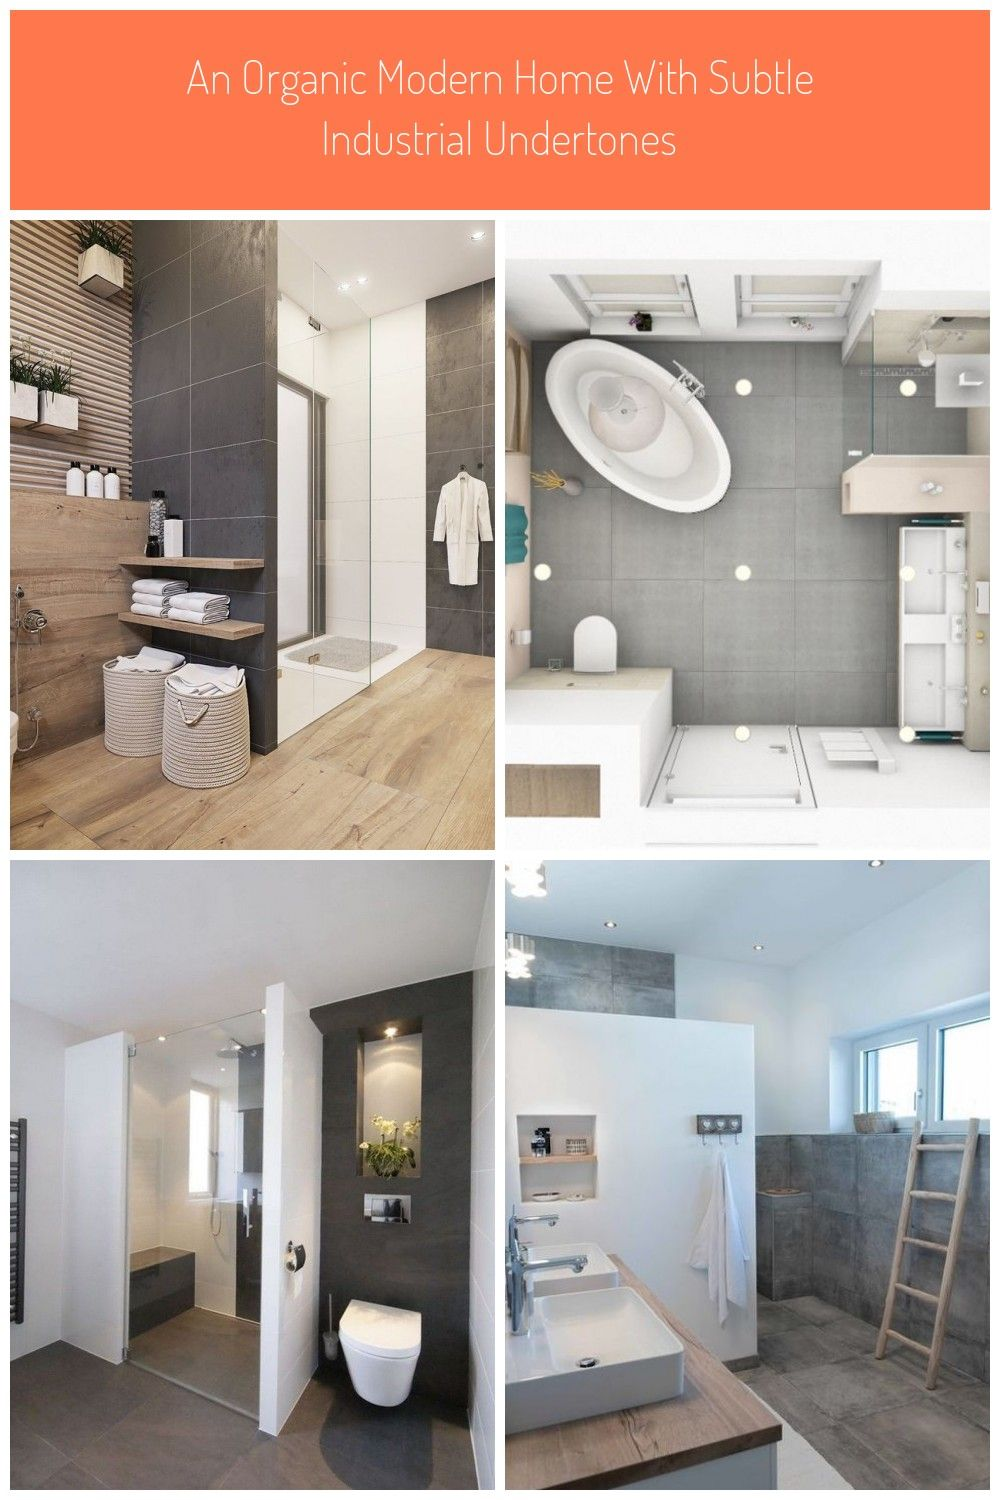 Wood And Dark Grey Bathroom Tiles Badezimmer Aufteilung 10qm An Organic Modern Home With Subtle Industri In 2020 Dark Gray Bathroom Organic Modern Grey Bathroom Tiles